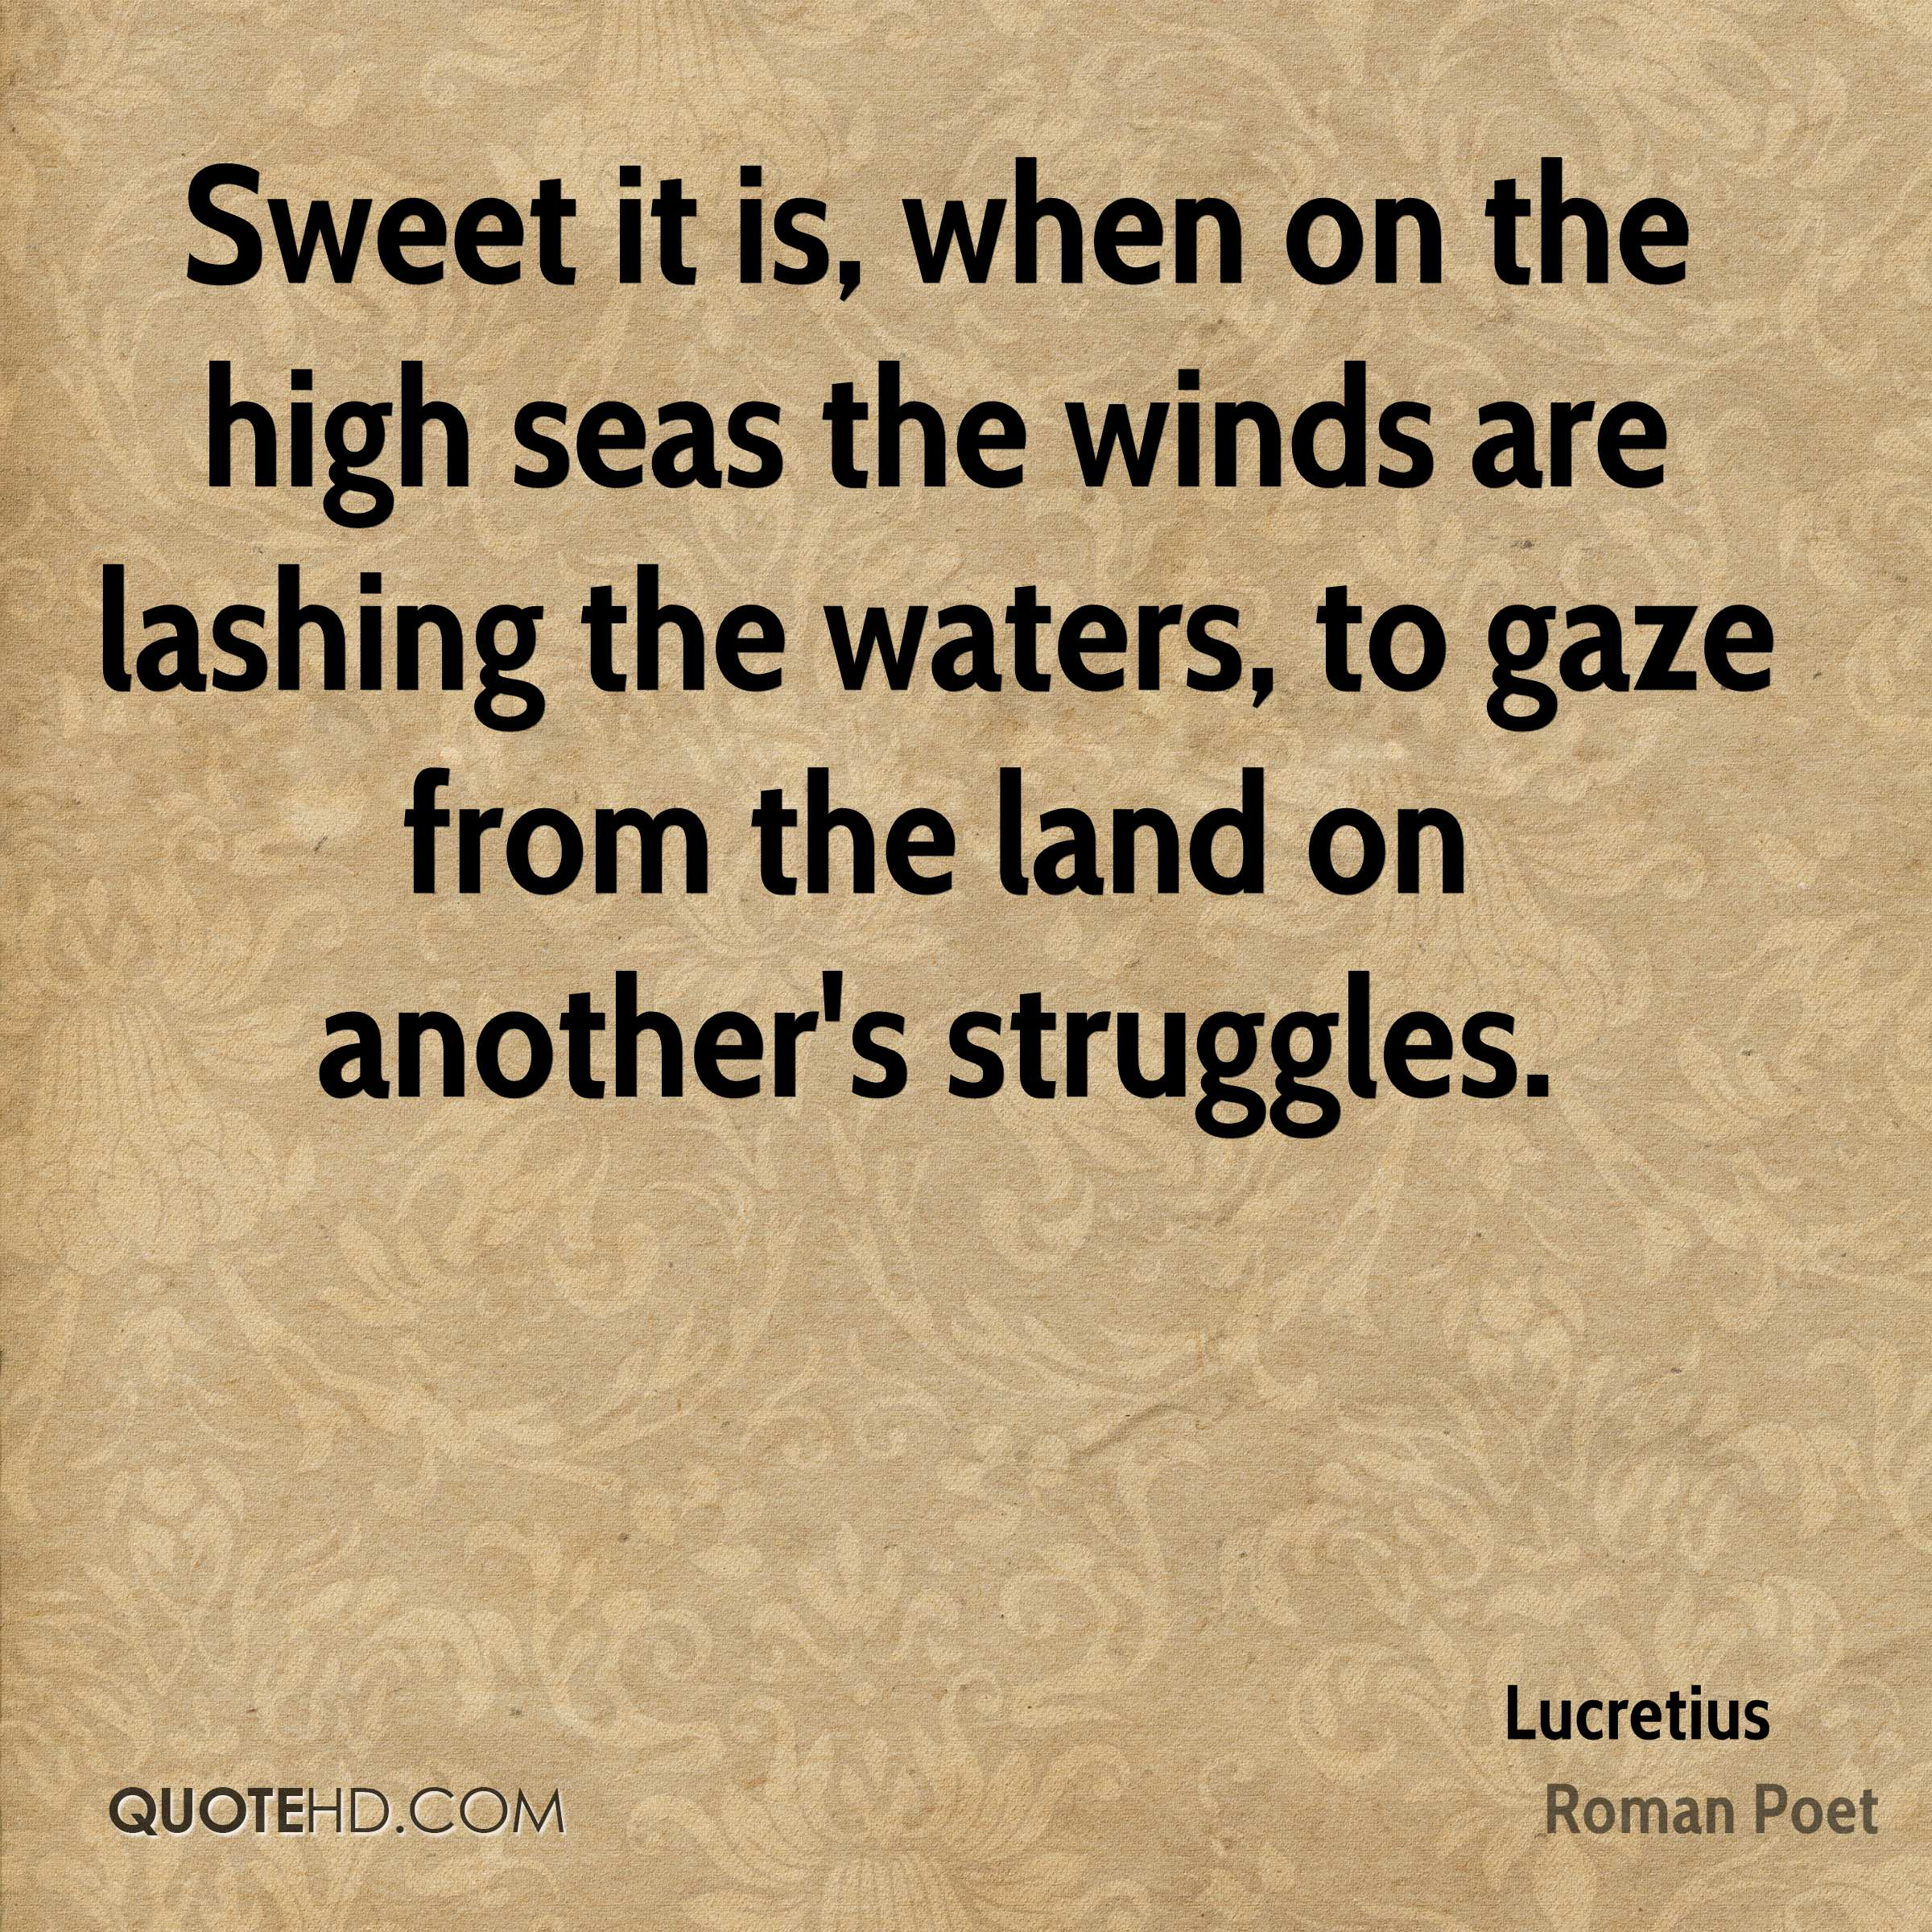 Sweet it is, when on the high seas the winds are lashing the waters, to gaze from the land on another's struggles.